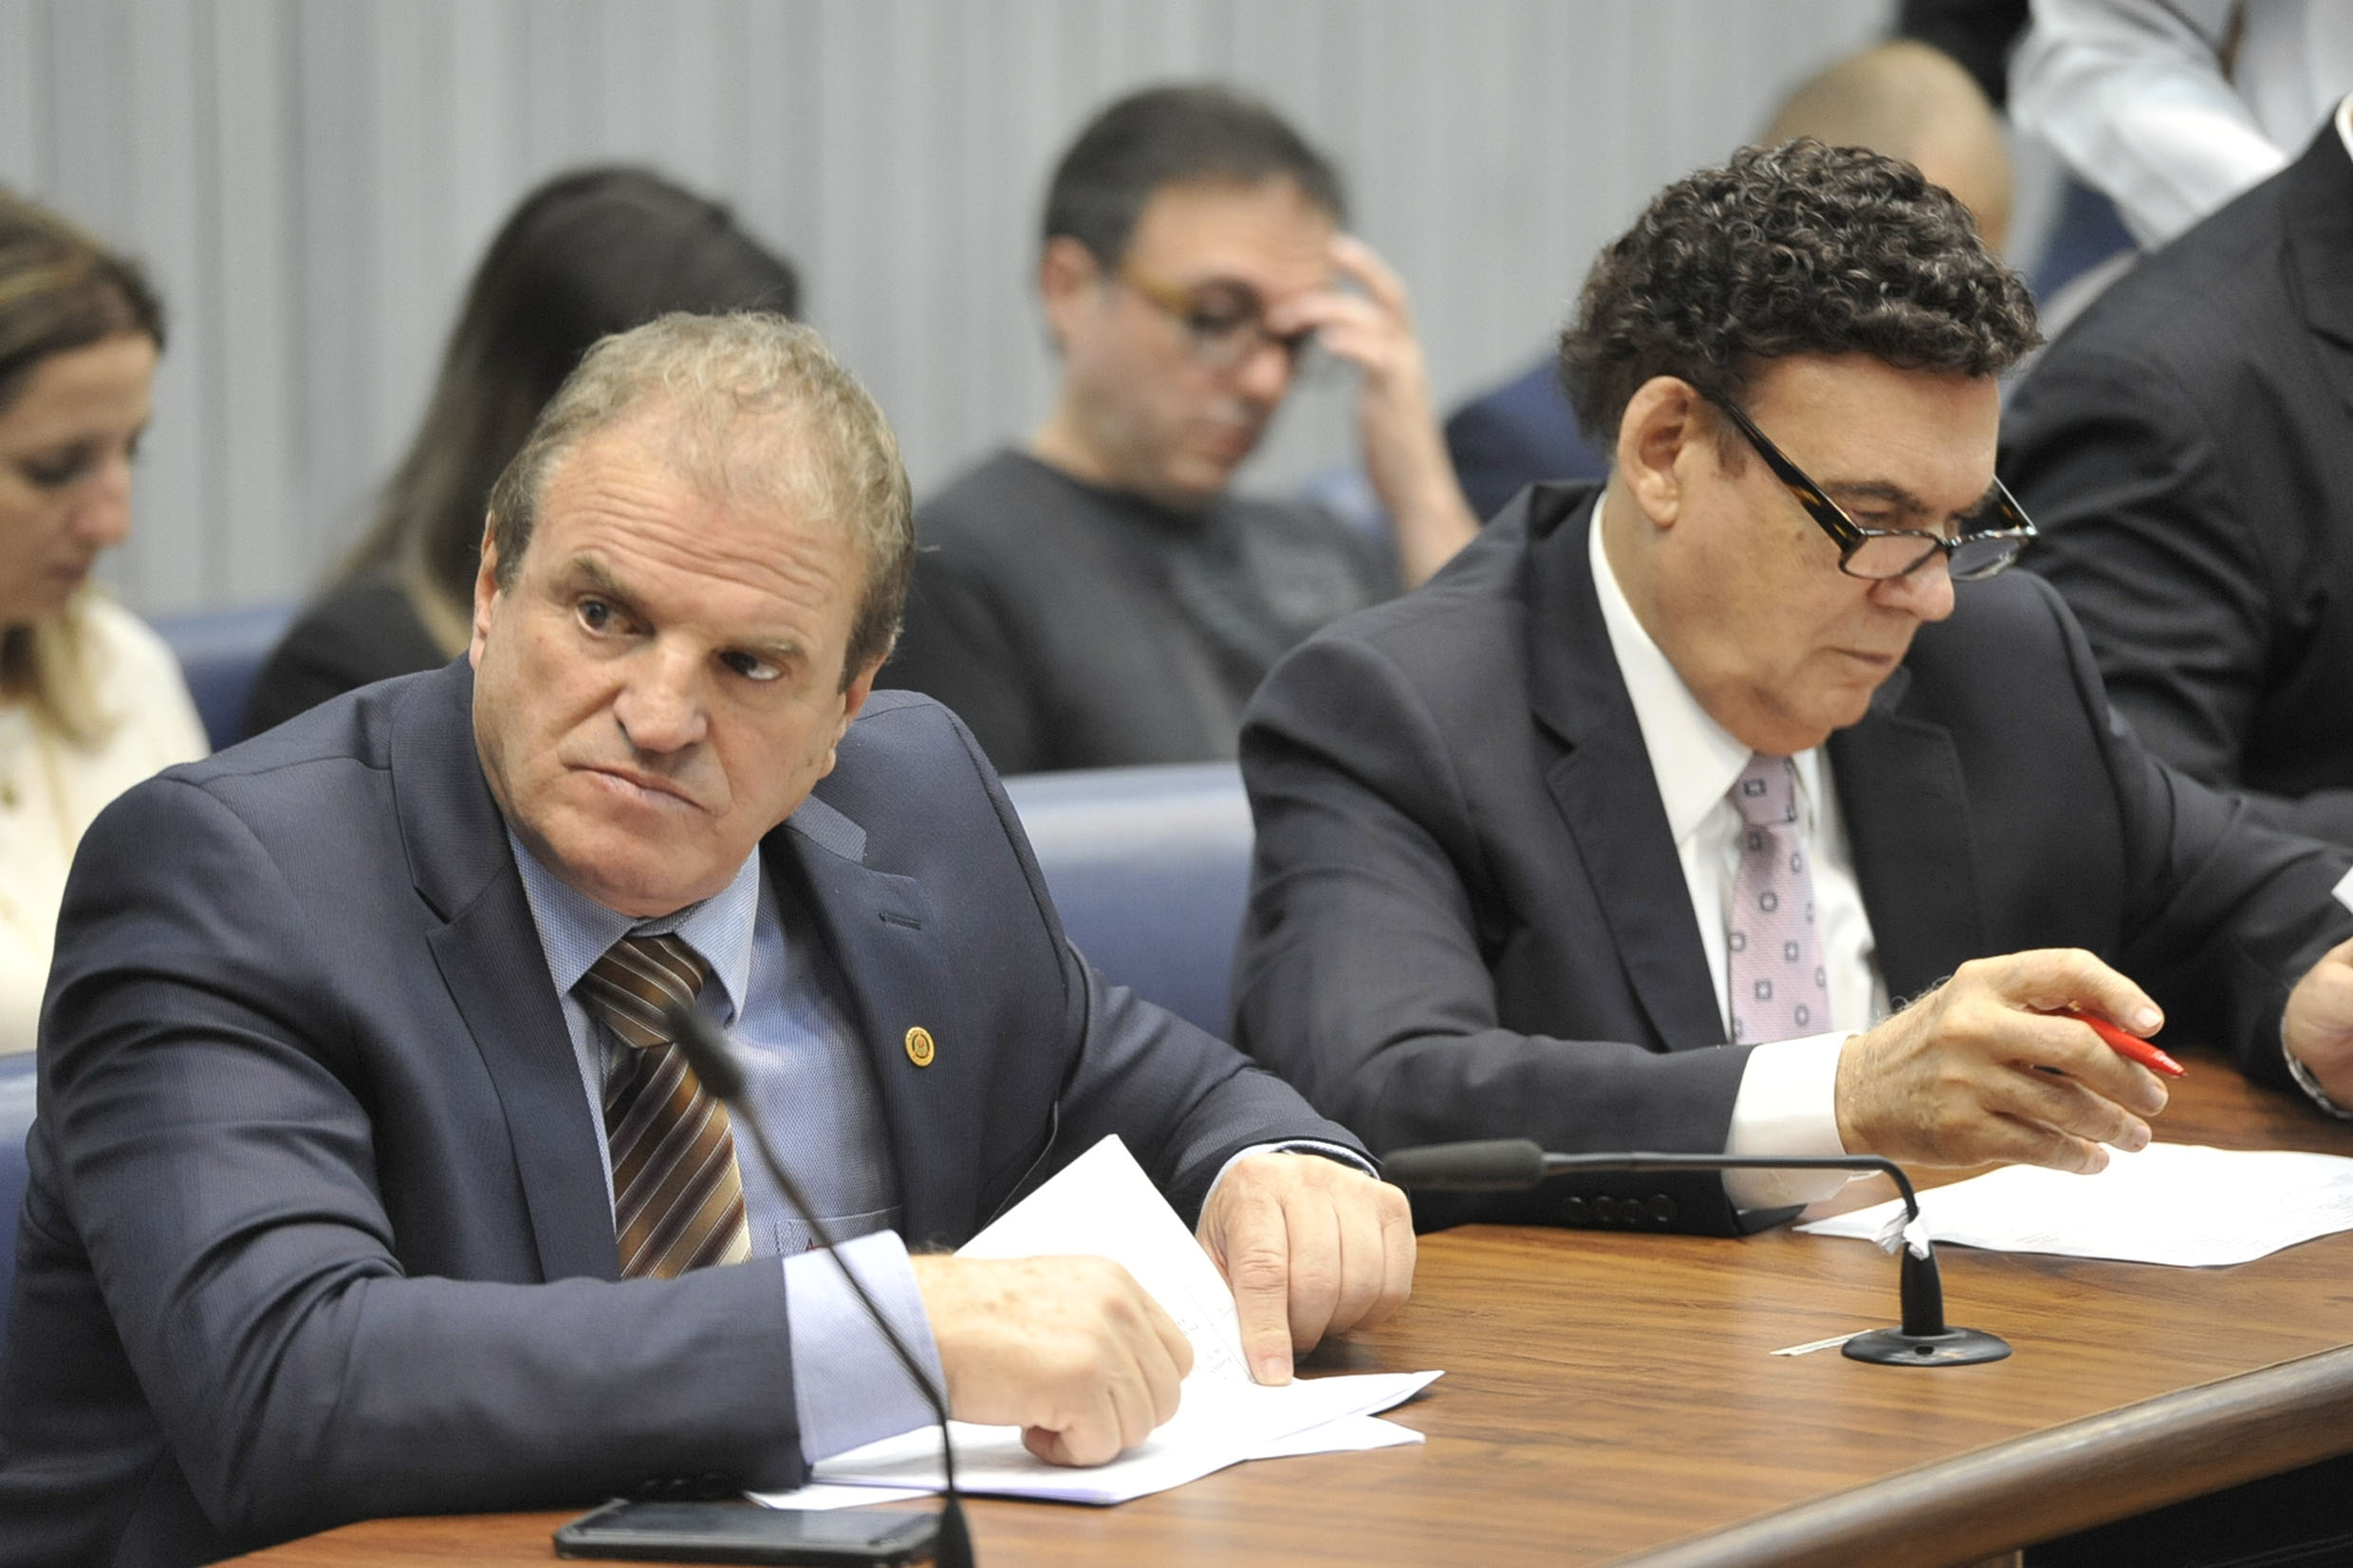 Parlamentares na comissão<a style='float:right' href='https://www3.al.sp.gov.br/repositorio/noticia/N-05-2019/fg234546.jpg' target=_blank><img src='/_img/material-file-download-white.png' width='14px' alt='Clique para baixar a imagem'></a>